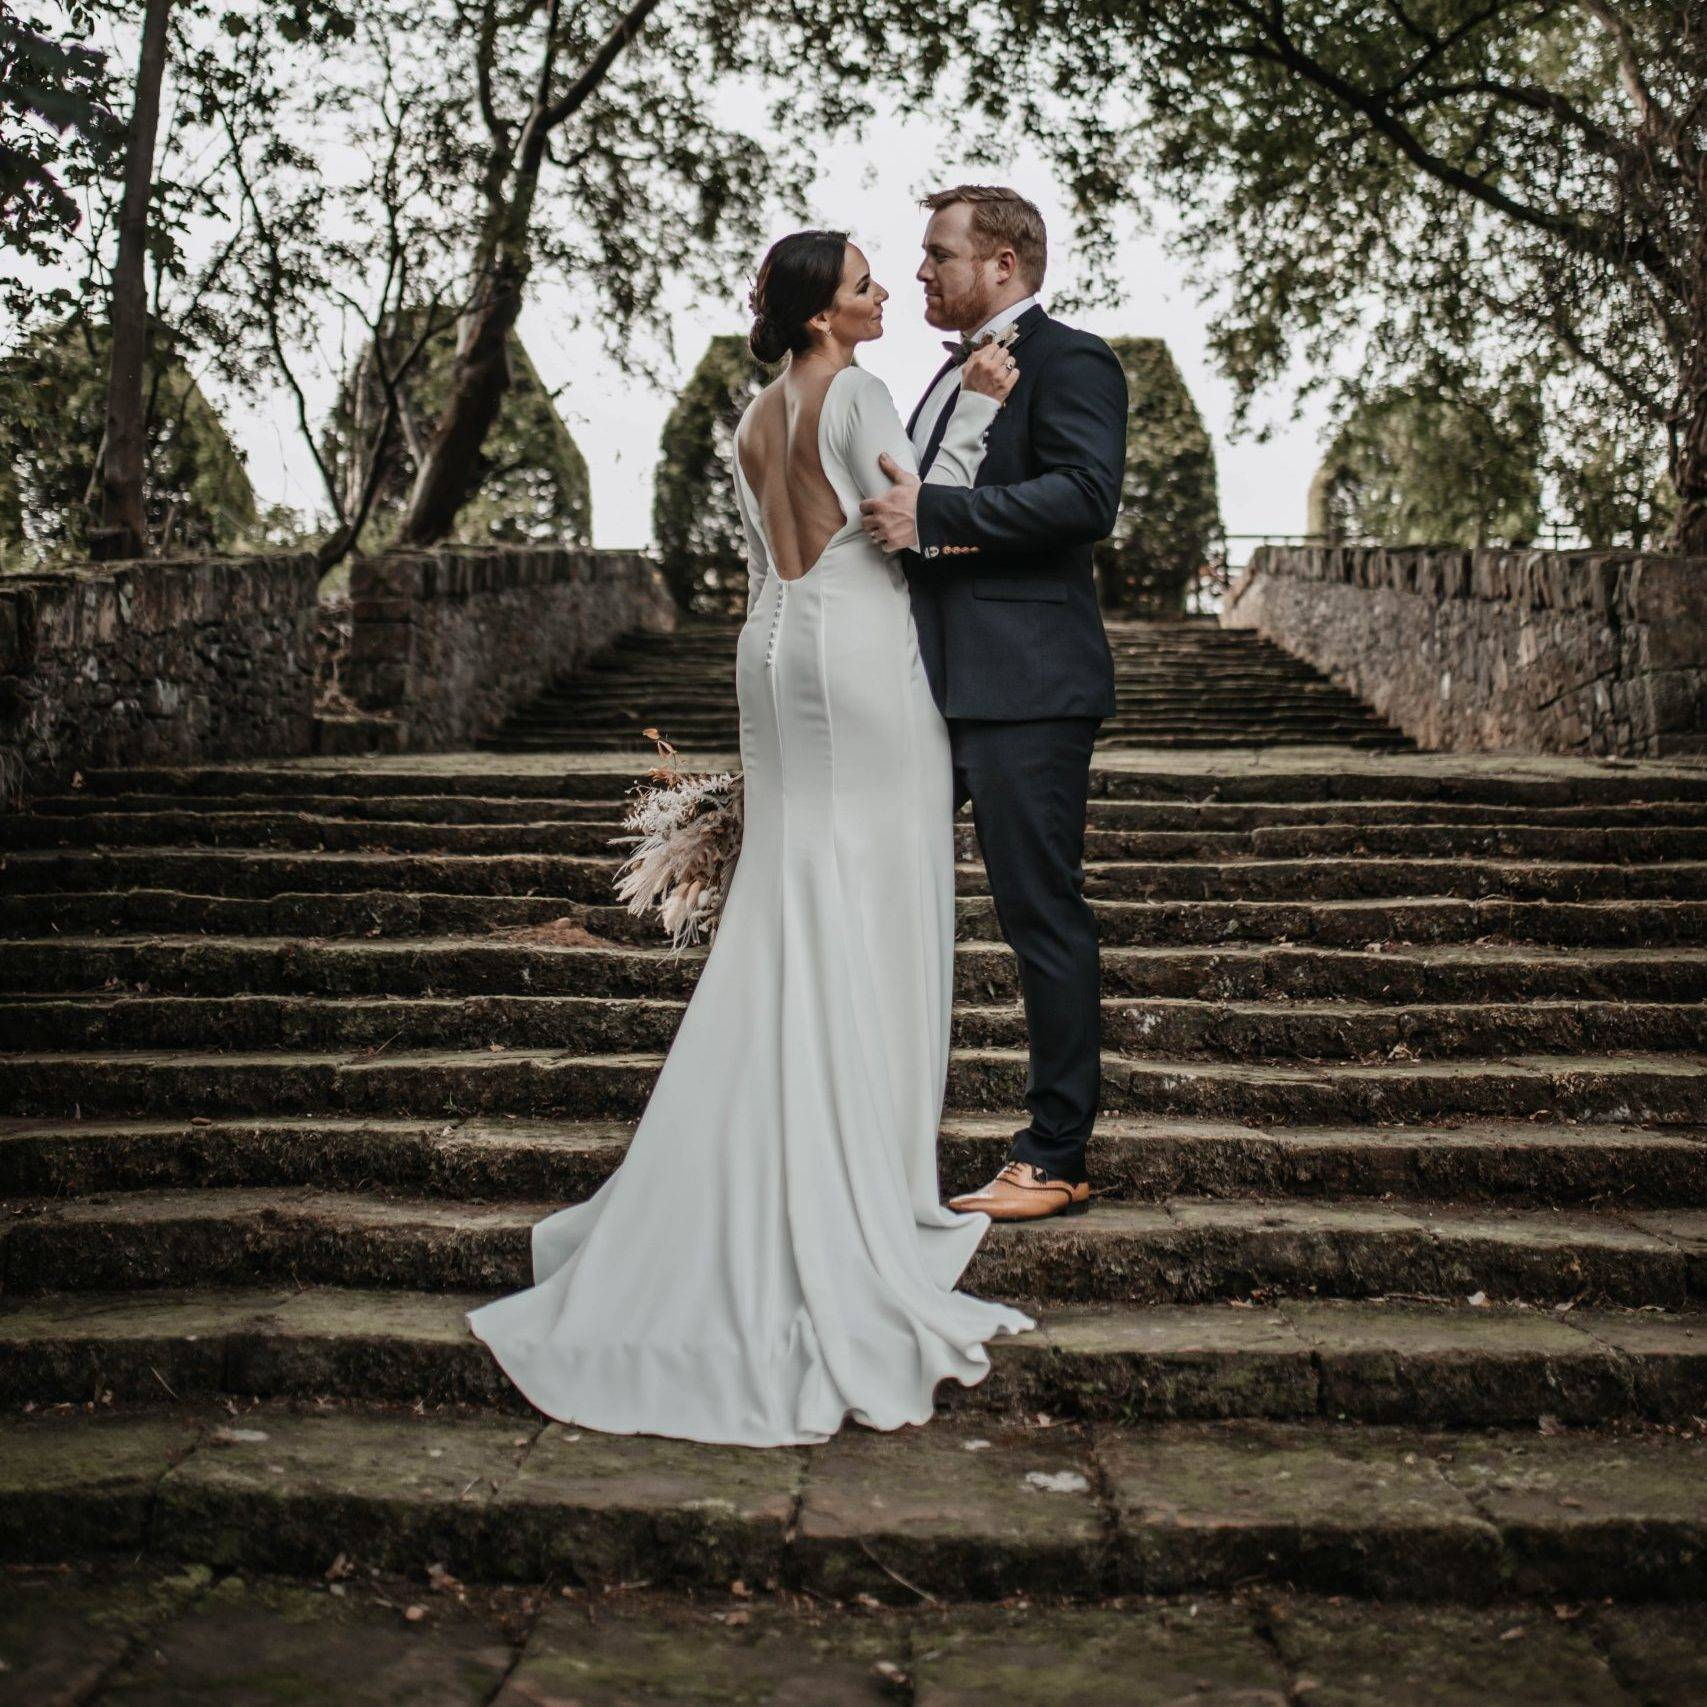 A bride and groom on the Italian Garden steps